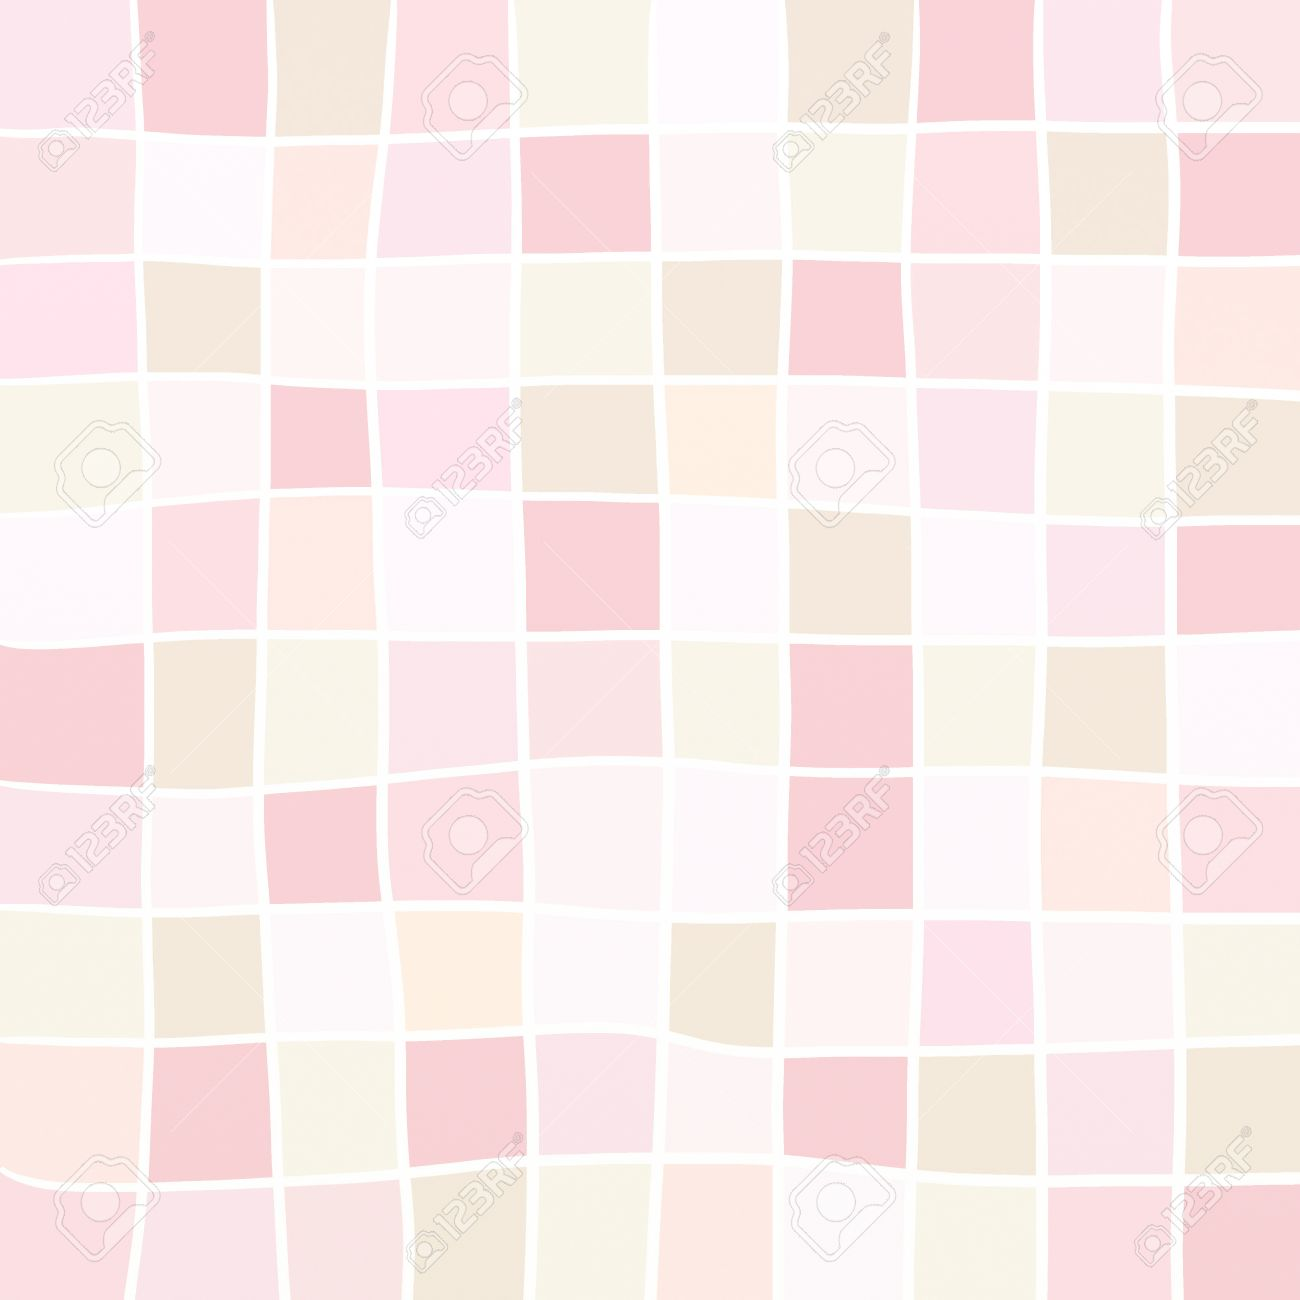 Rose Pink Color Square Background | 123Freevectors